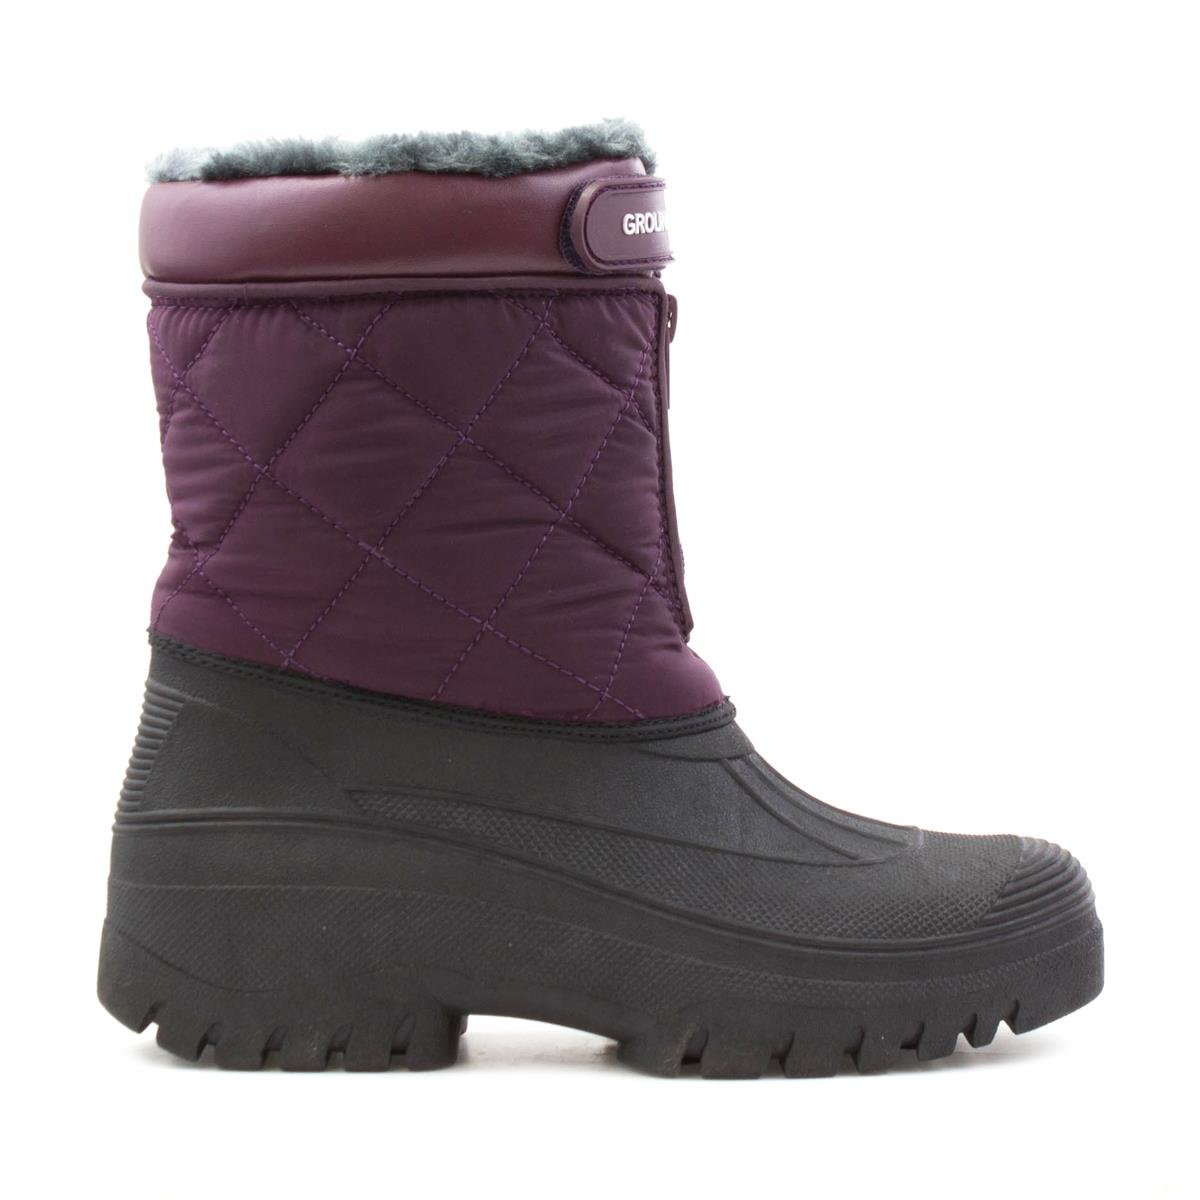 b2712dcc5c6 Groundwork Womens Plum and Black Snow Boot: Amazon.co.uk: Shoes & Bags